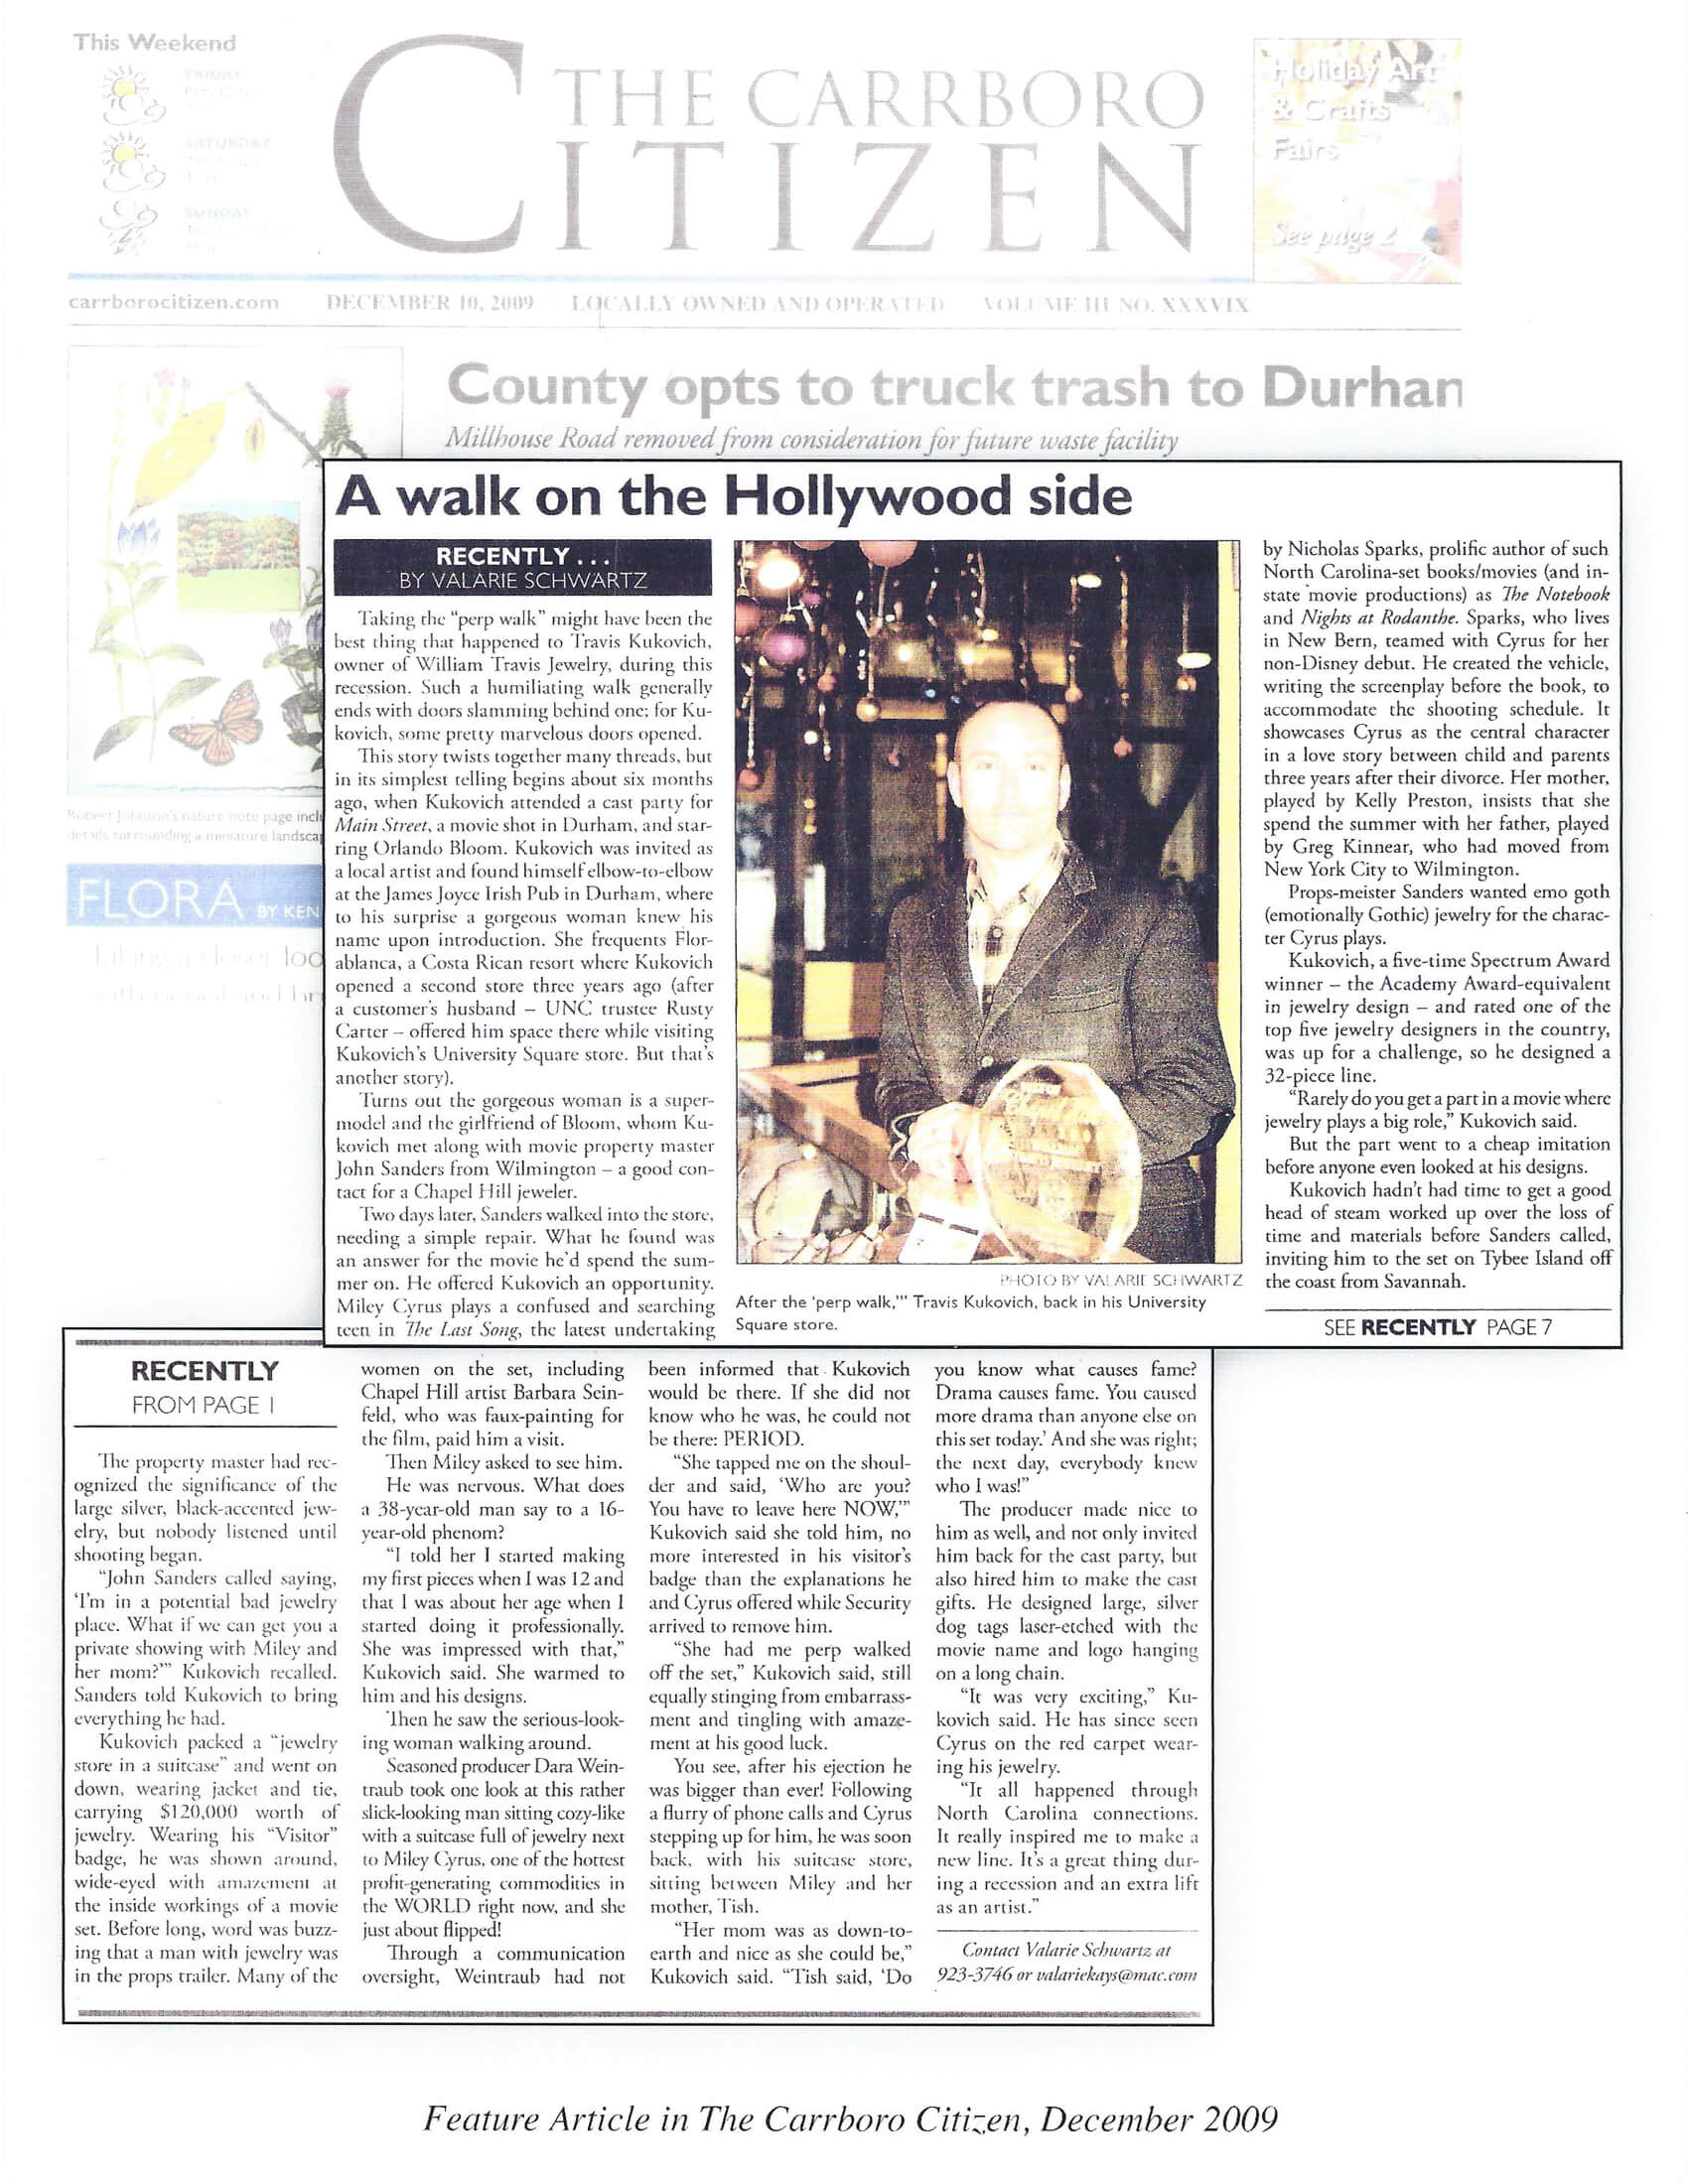 The Carrboro Citizen December 2009